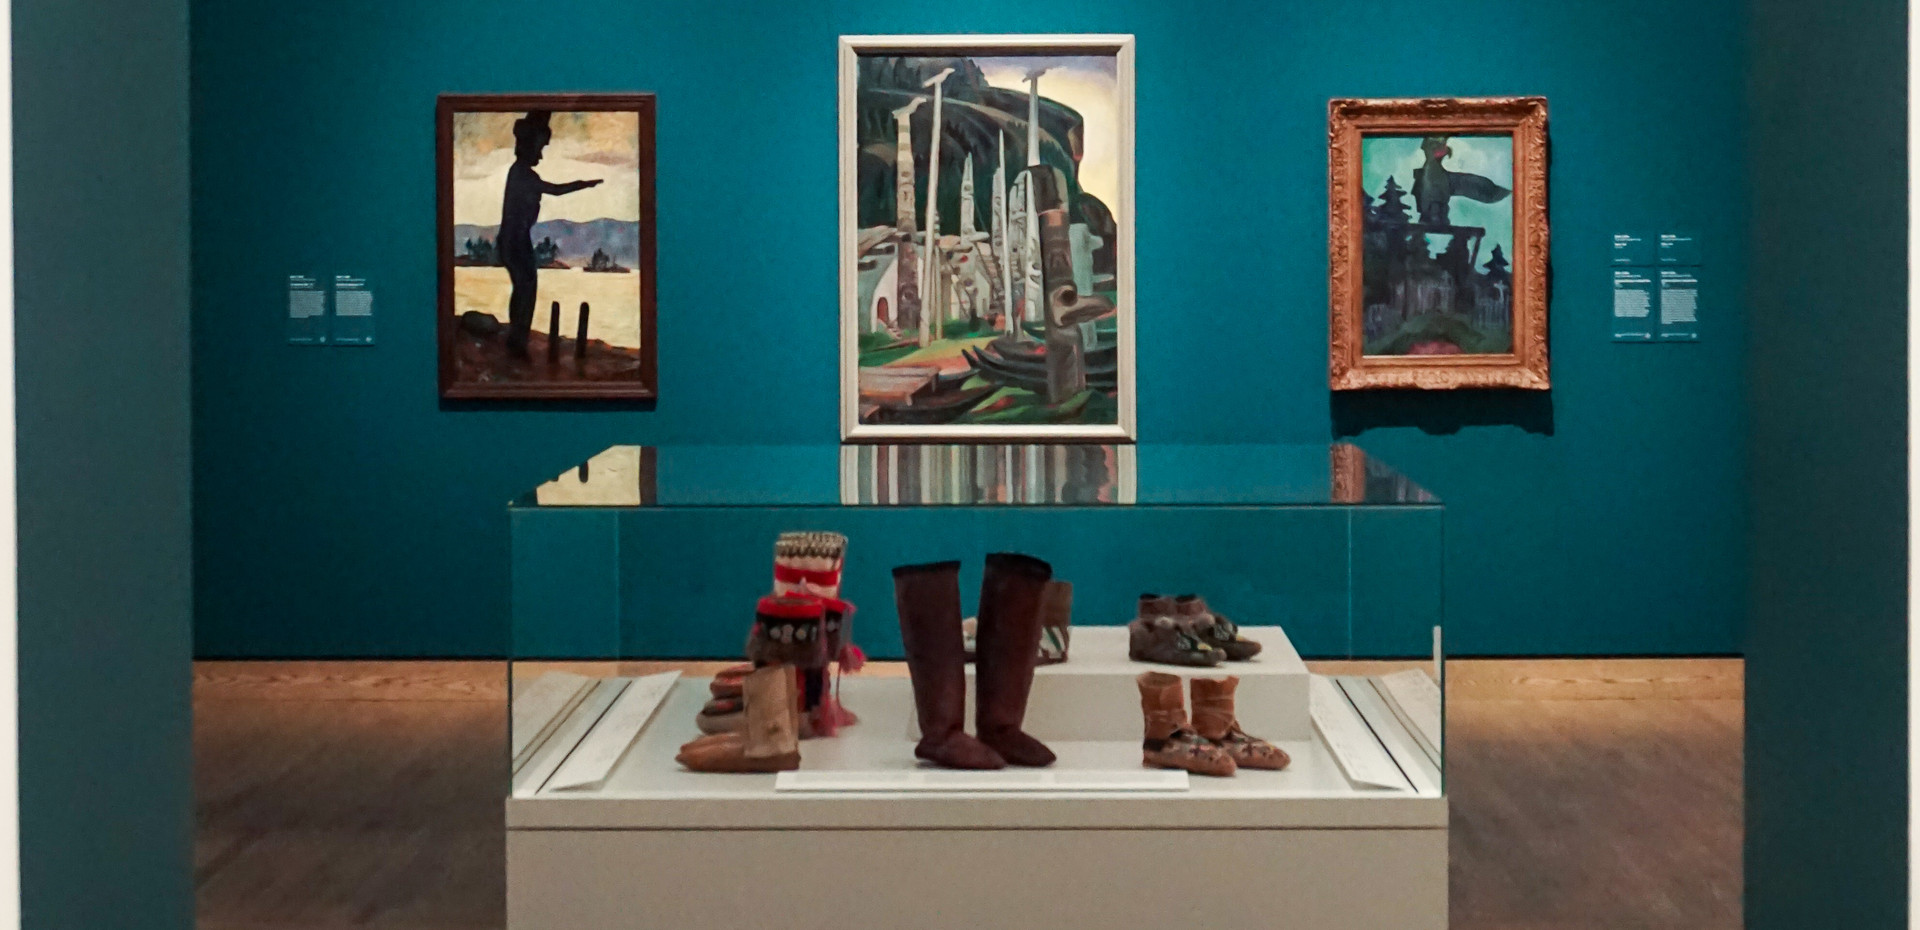 Get cultured at the National Art Gallery of Canada